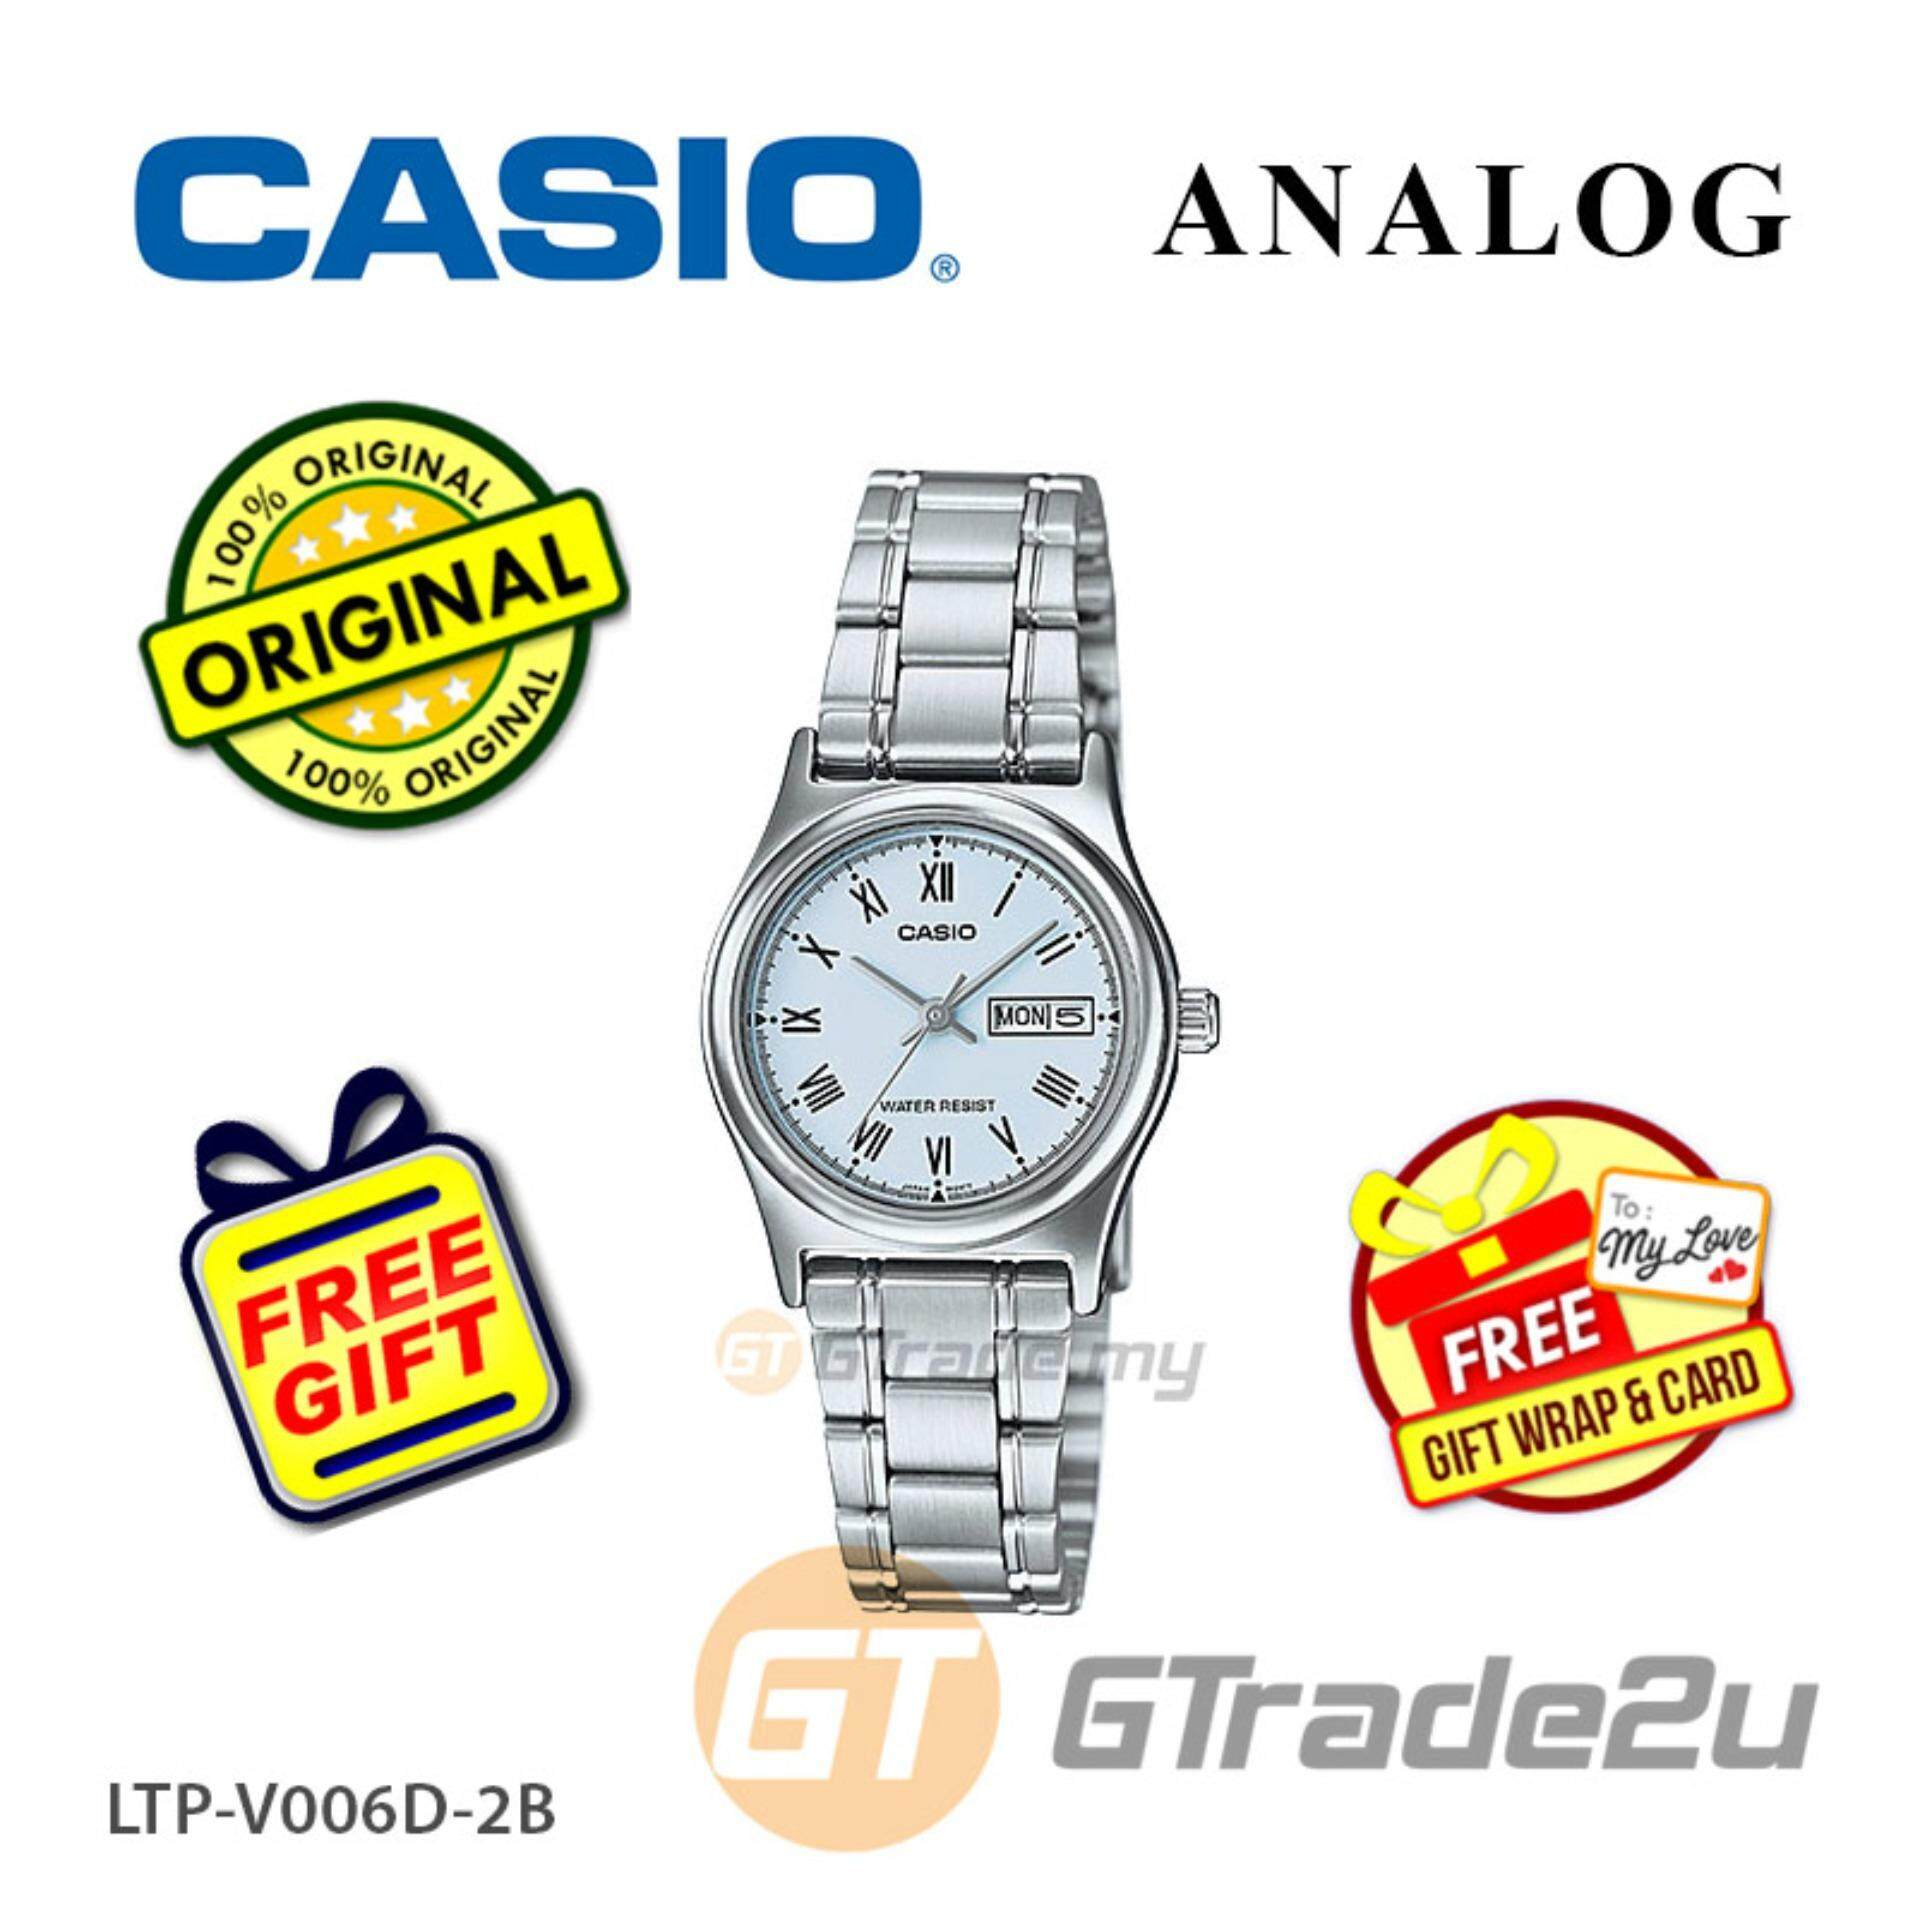 [BDAY SALE] Casio Standard LTP-V006D-2BV Analog Ladies Watch - Day Date Display For Women Malaysia